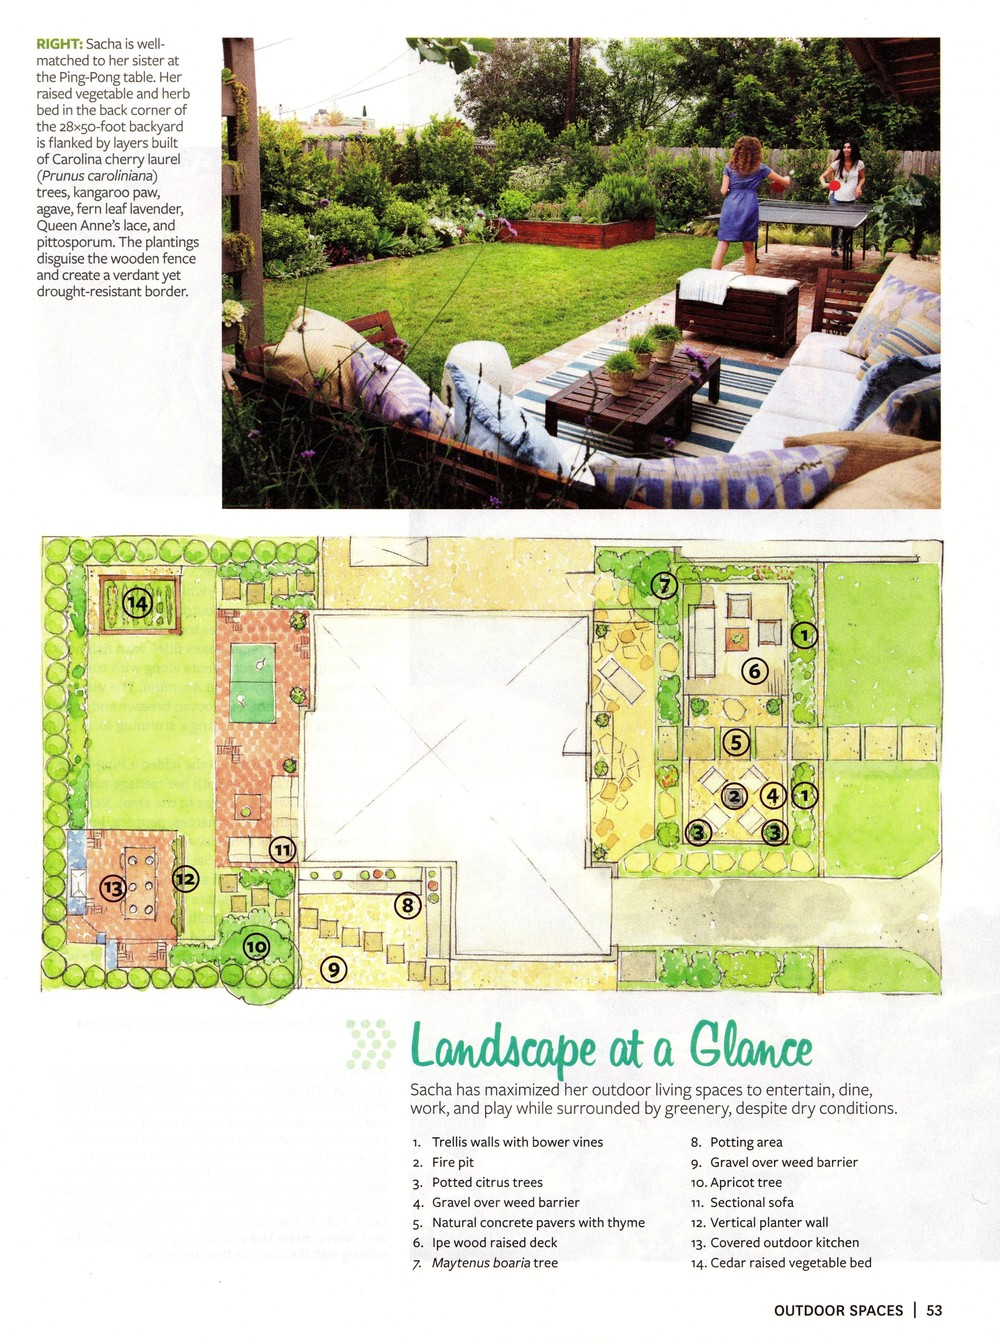 Outdoor Spaces_page 620160320_18090651.jpg